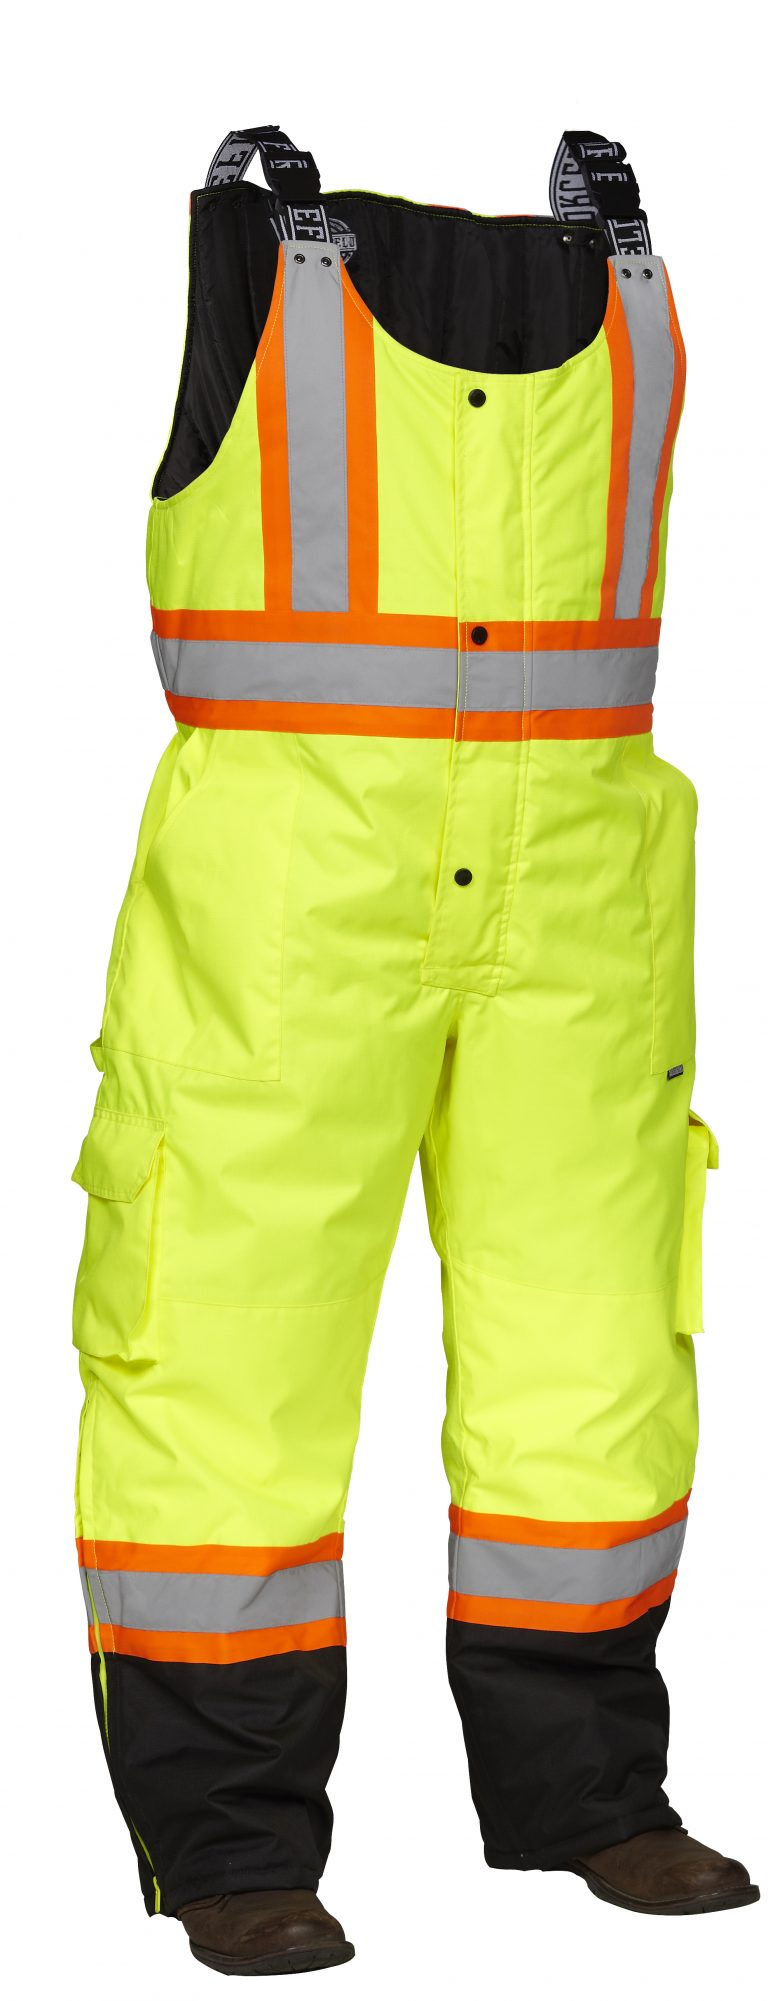 Forcefield Hi-Vis Safety Overall 024-EN835RLY